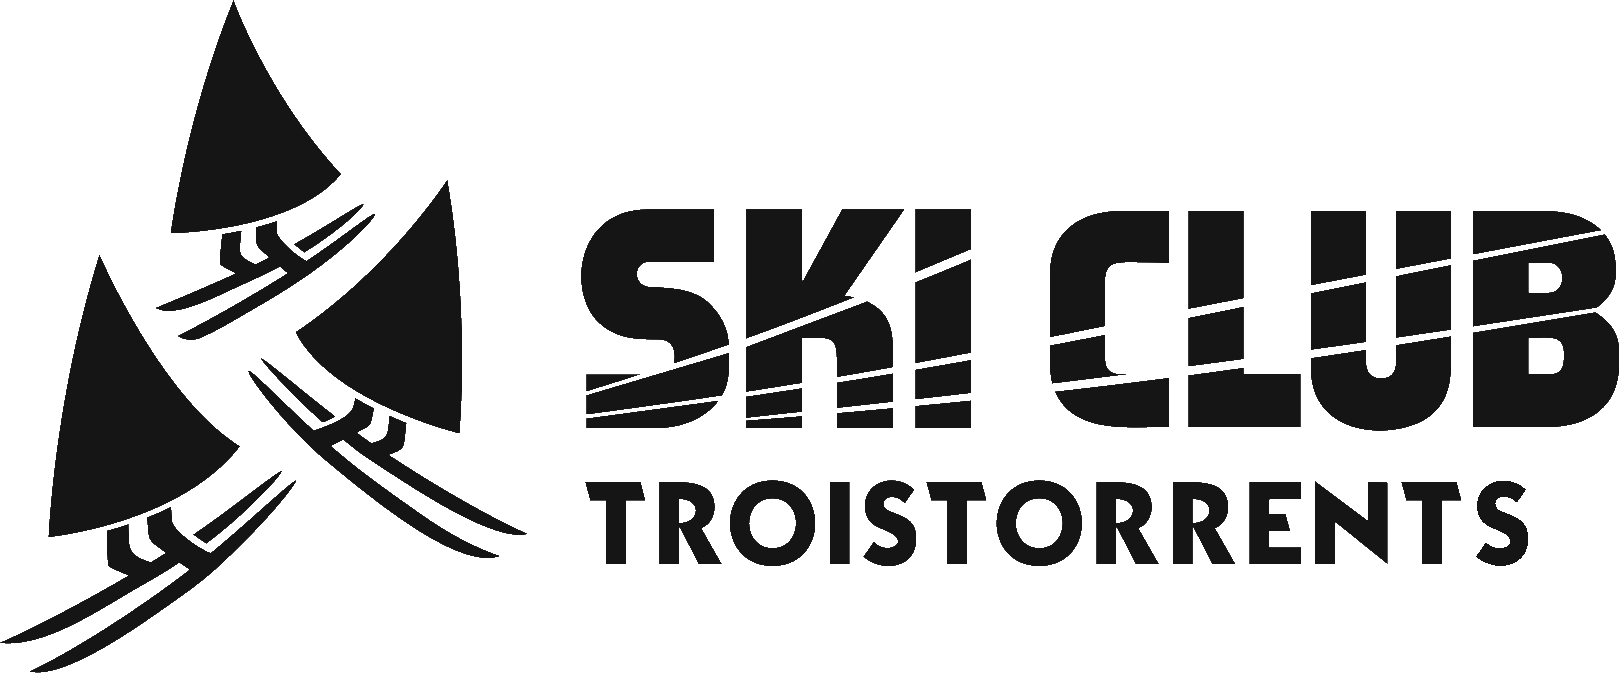 Ski Club Troistorrents